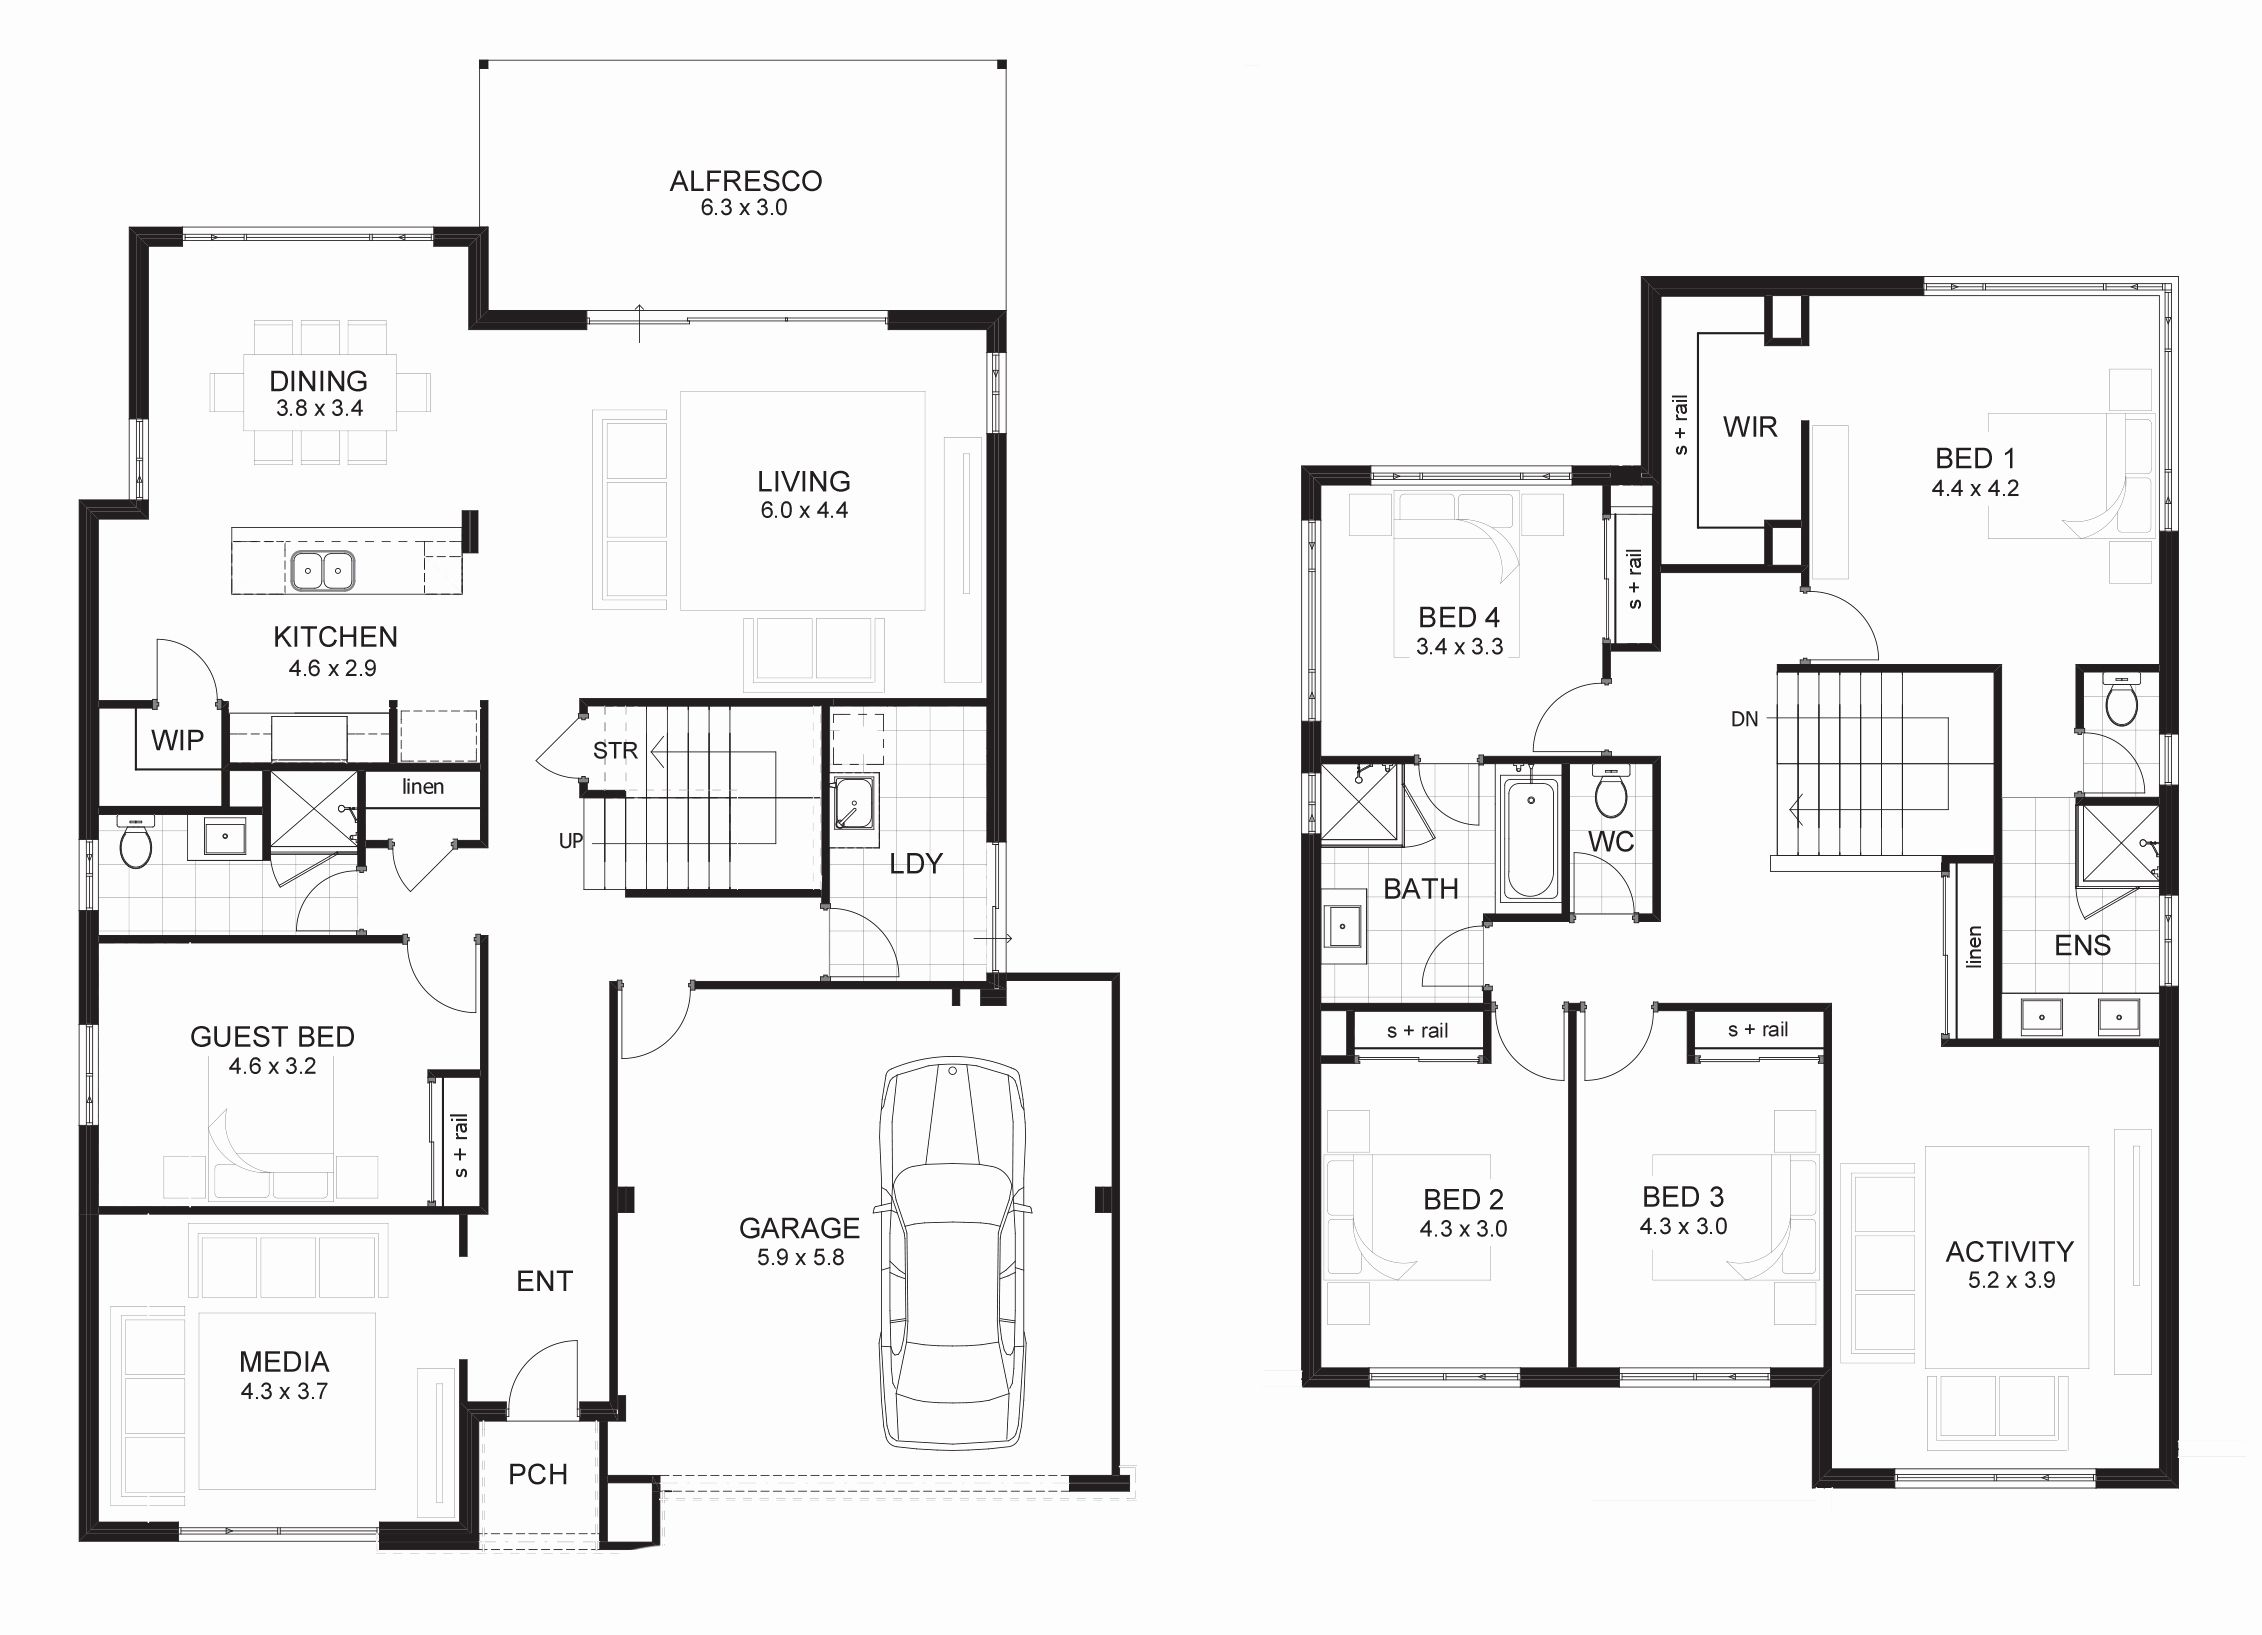 2 Storey House Floor Plan Dwg Inspirational Residential